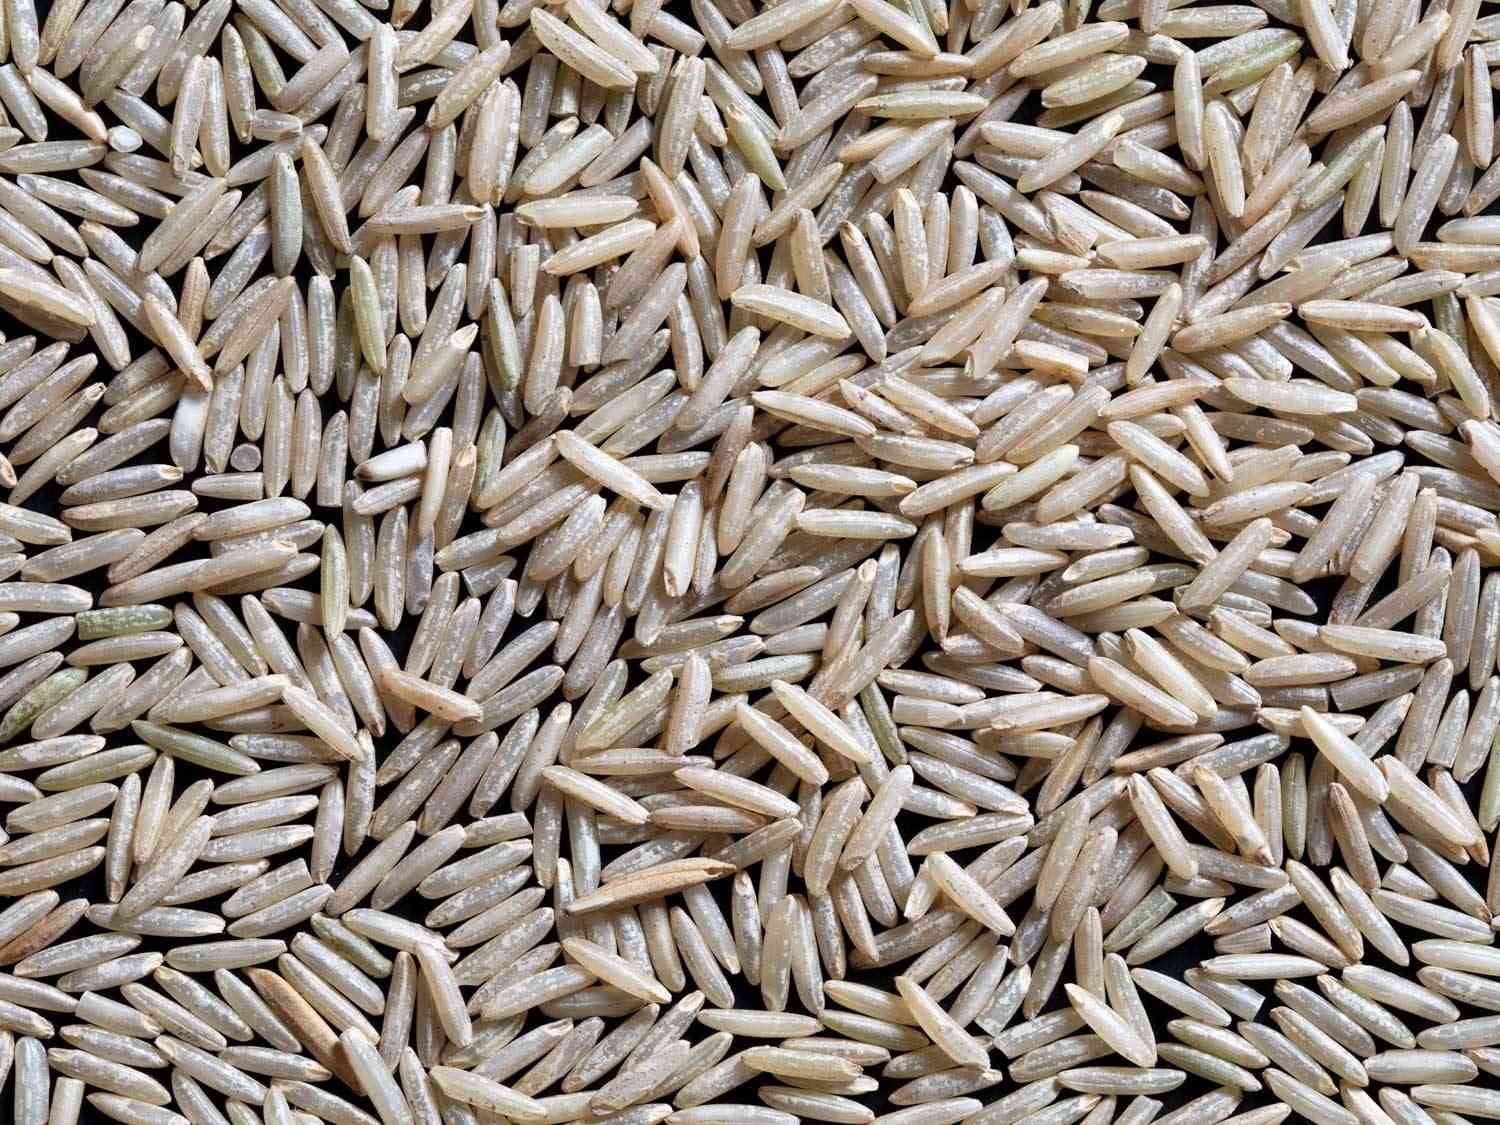 Overhead close-up of long brown basmati rice grains on a flat surface